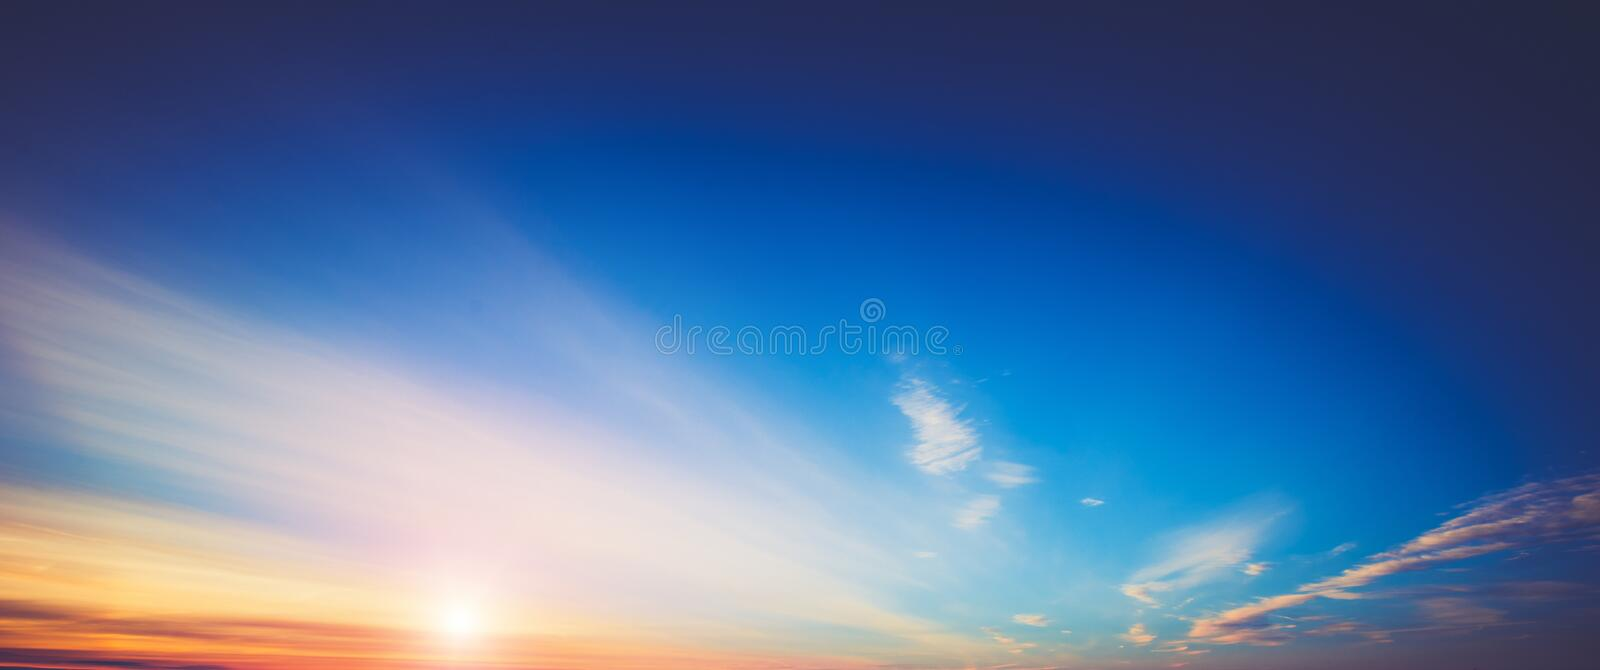 Summer sky clouds royalty free stock photography